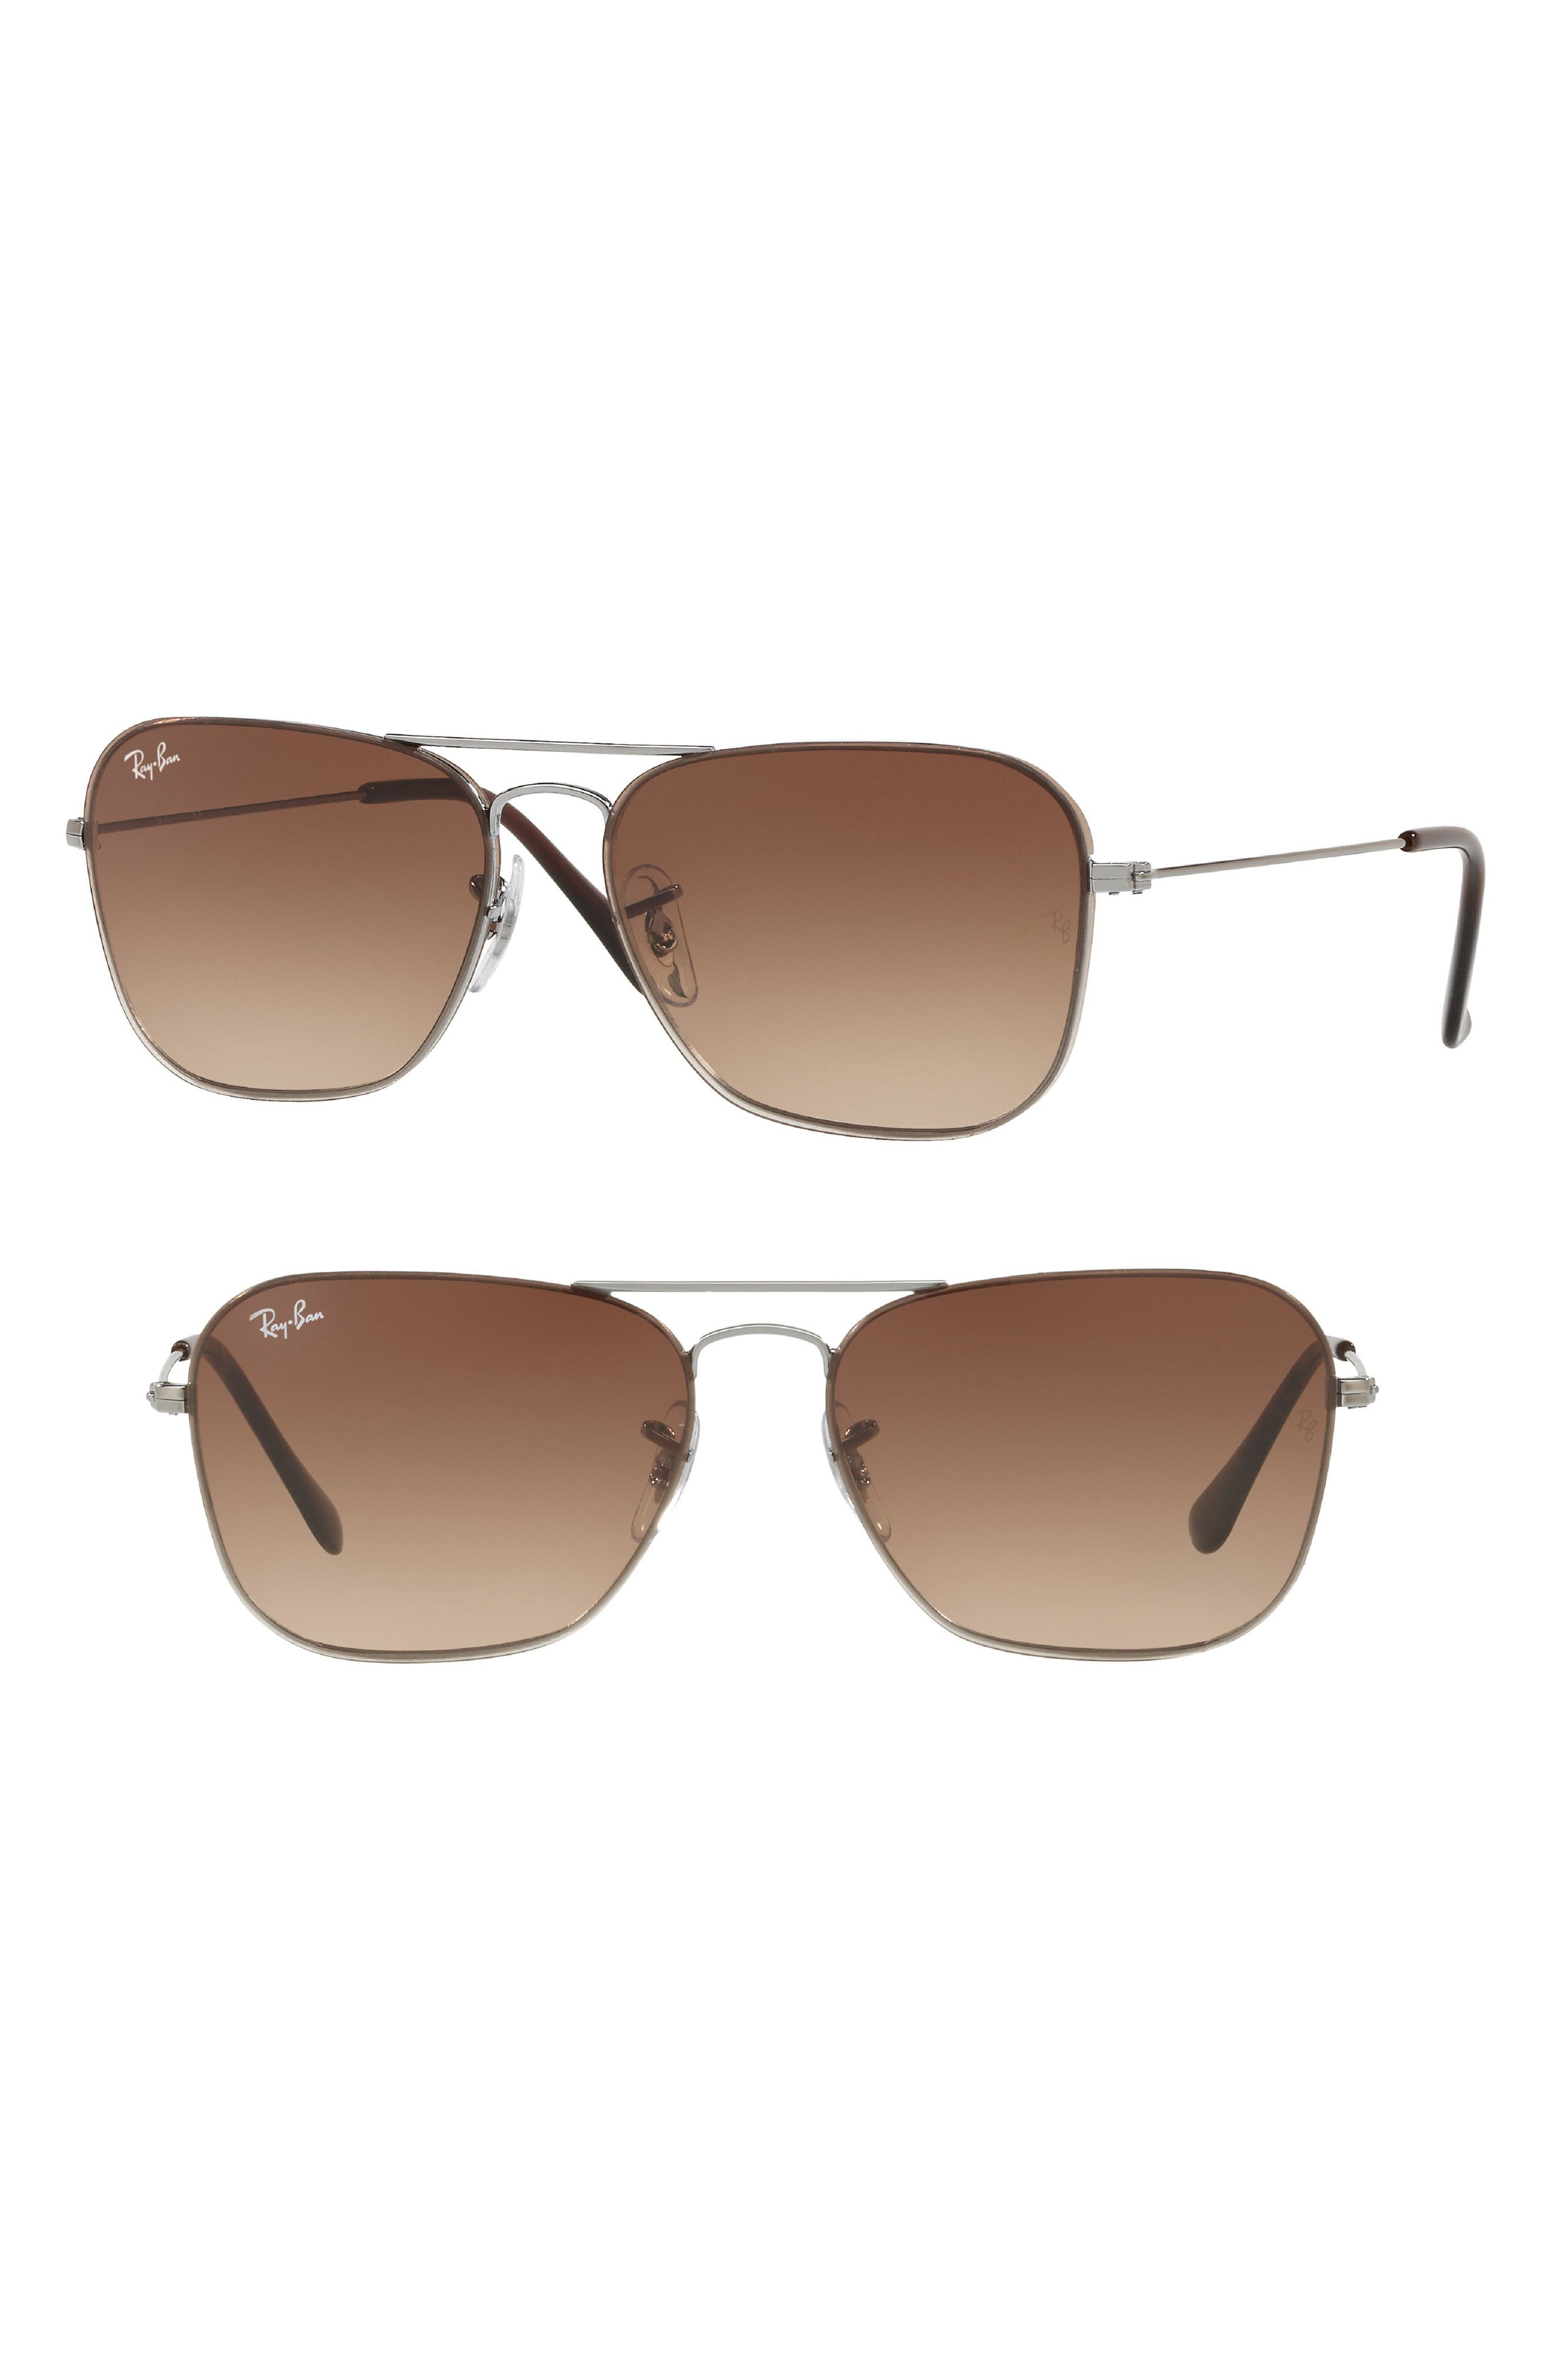 Youngster 56mm Aviator Sunglasses,                         Main,                         color, 062